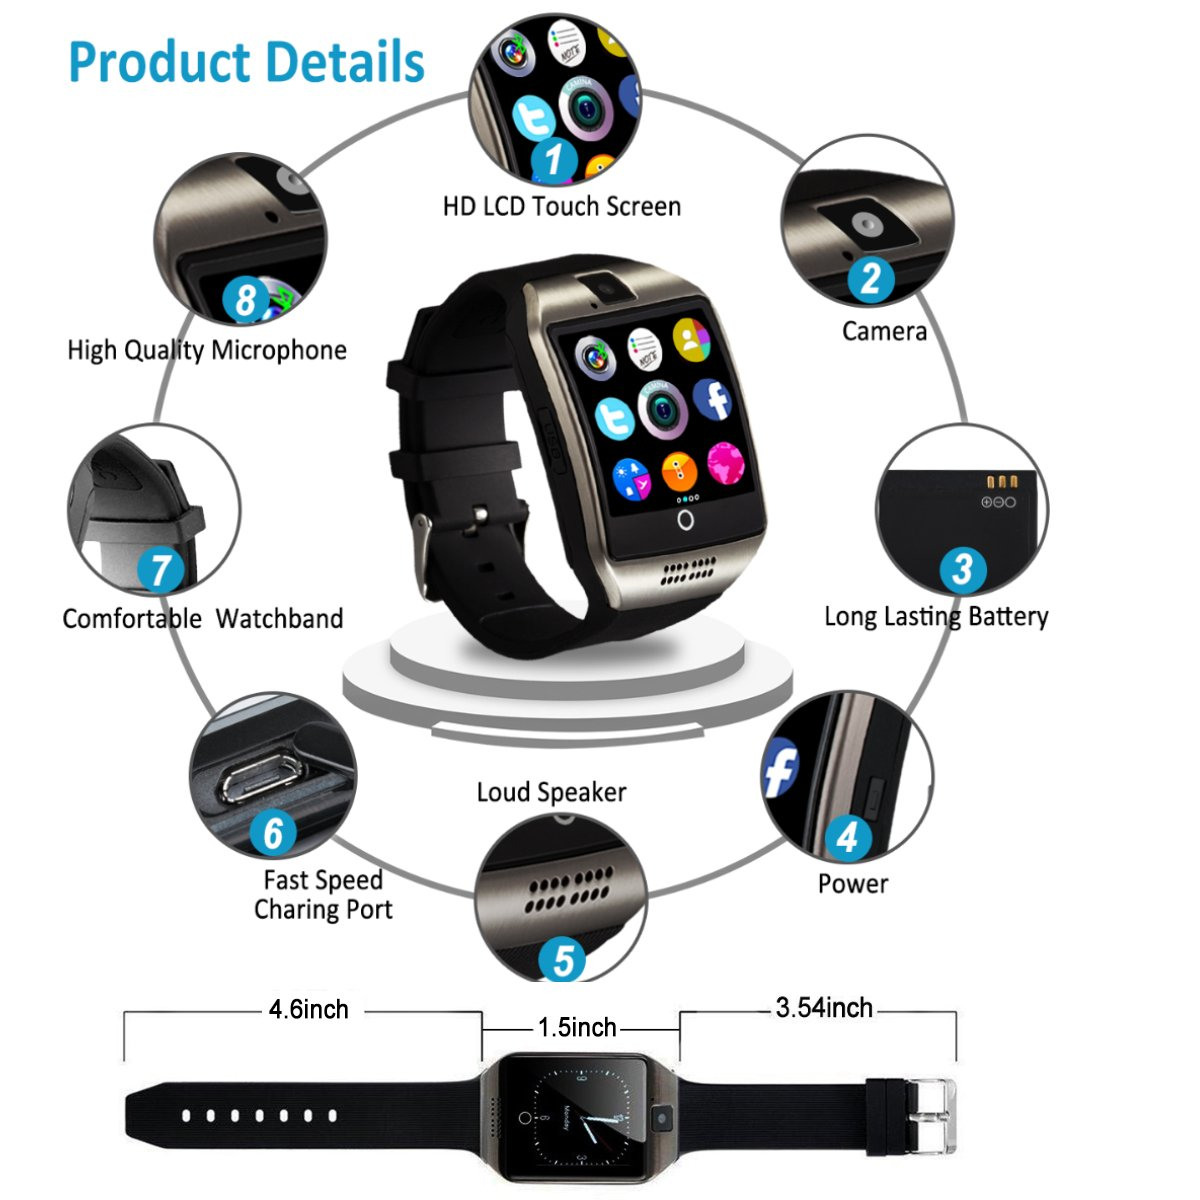 Bluetooth Smart Watch Touchscreen with Camera,Unlocked Watch Cell Phone with Sim Card Slot,Smart Wrist Watch,Waterproof Smartwatch Phone for Android Samsung IOS Iphone 7 6S Men Women Kids by Luckymore (Image #6)